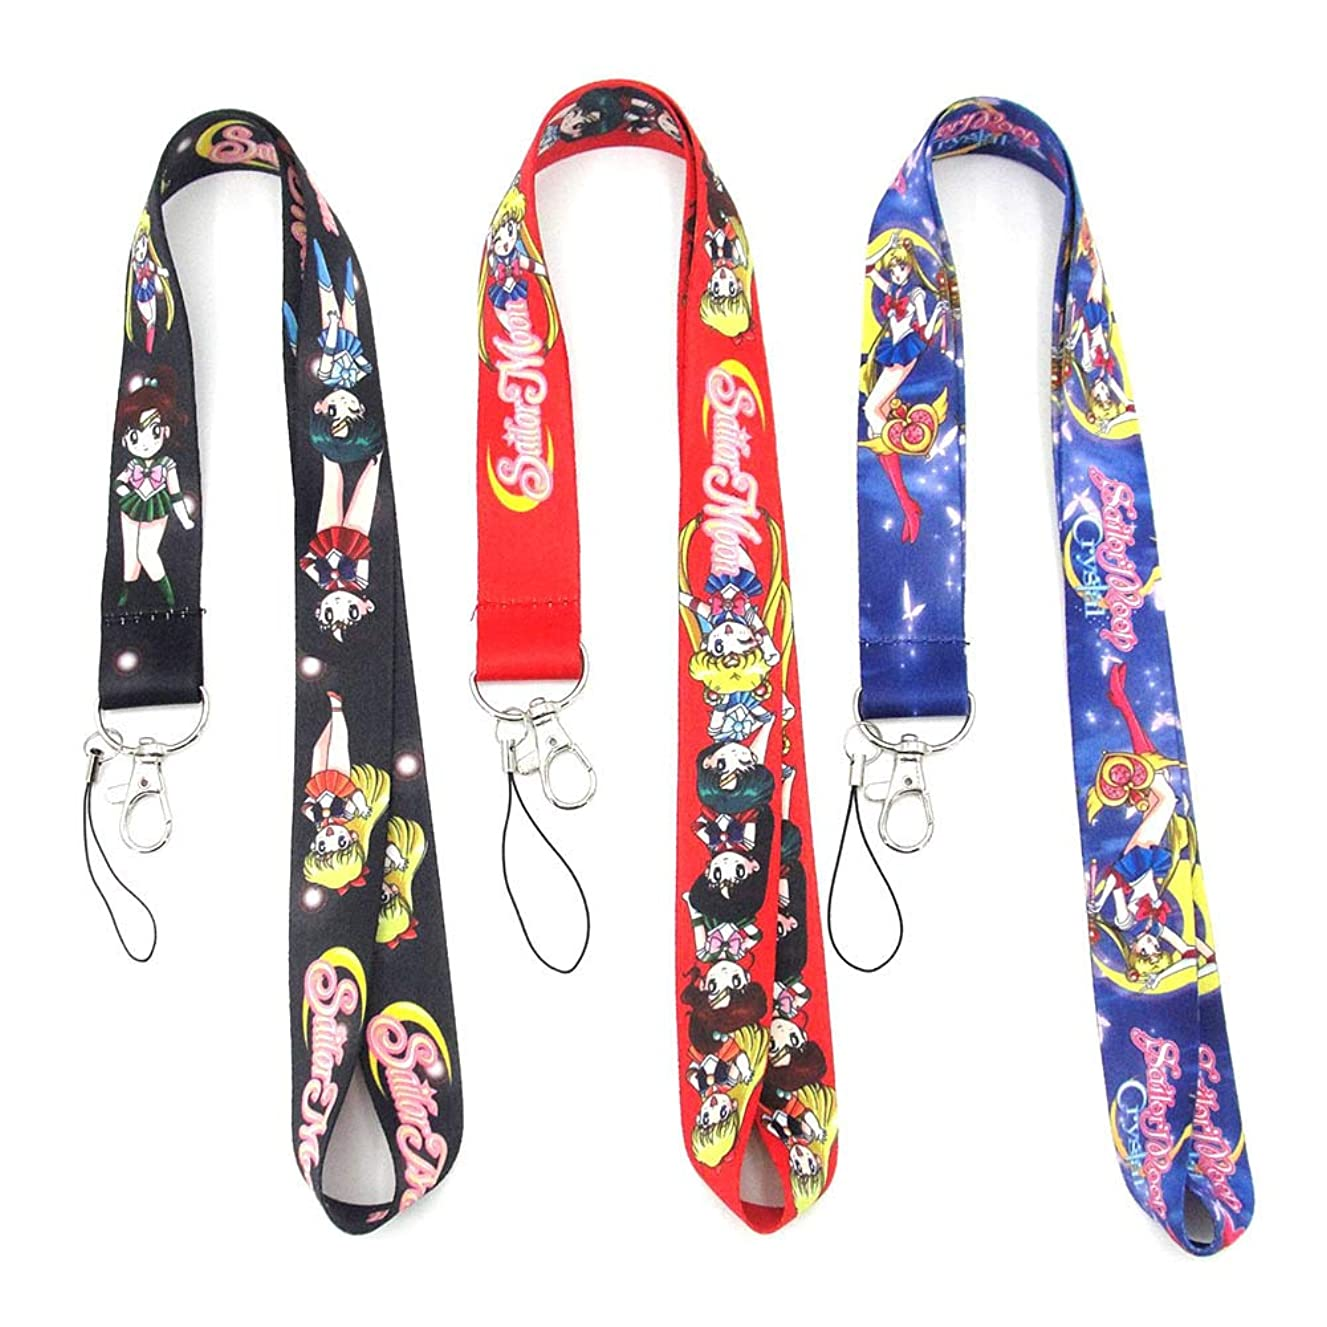 HomMall Anime Sailor Moon Key Phone Lanyard Badge ID Cards Holders Neck Straps Keyring Keychain, 3Pcs